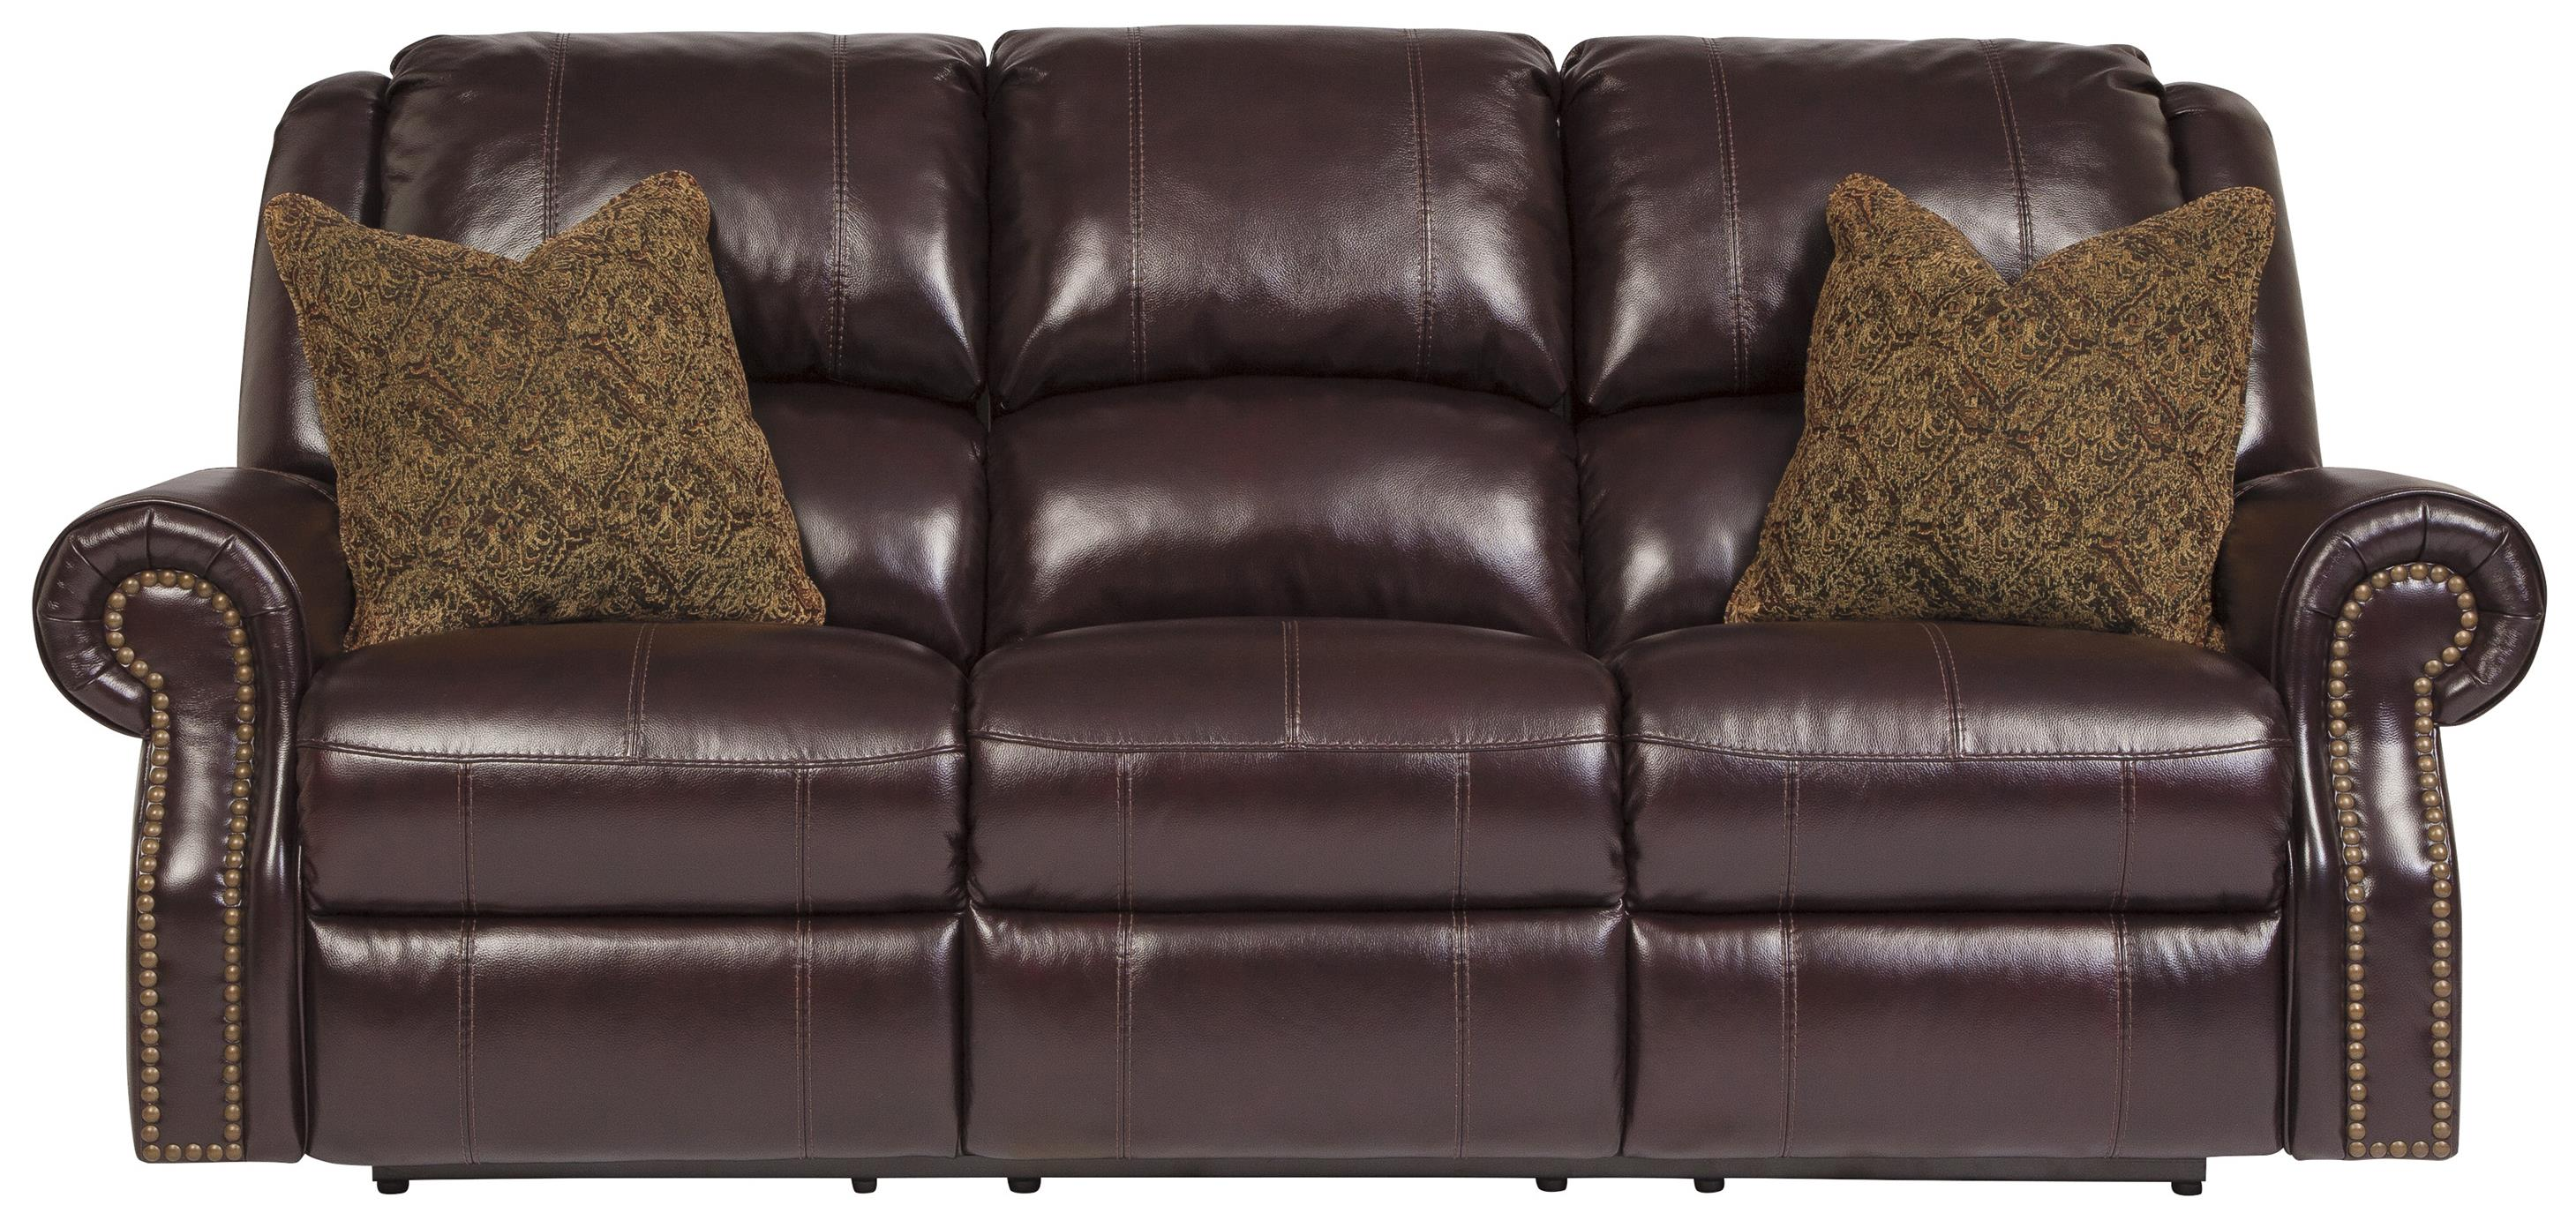 Top Grain Leather Match Reclining Power Sofa with Nailhead Trim by